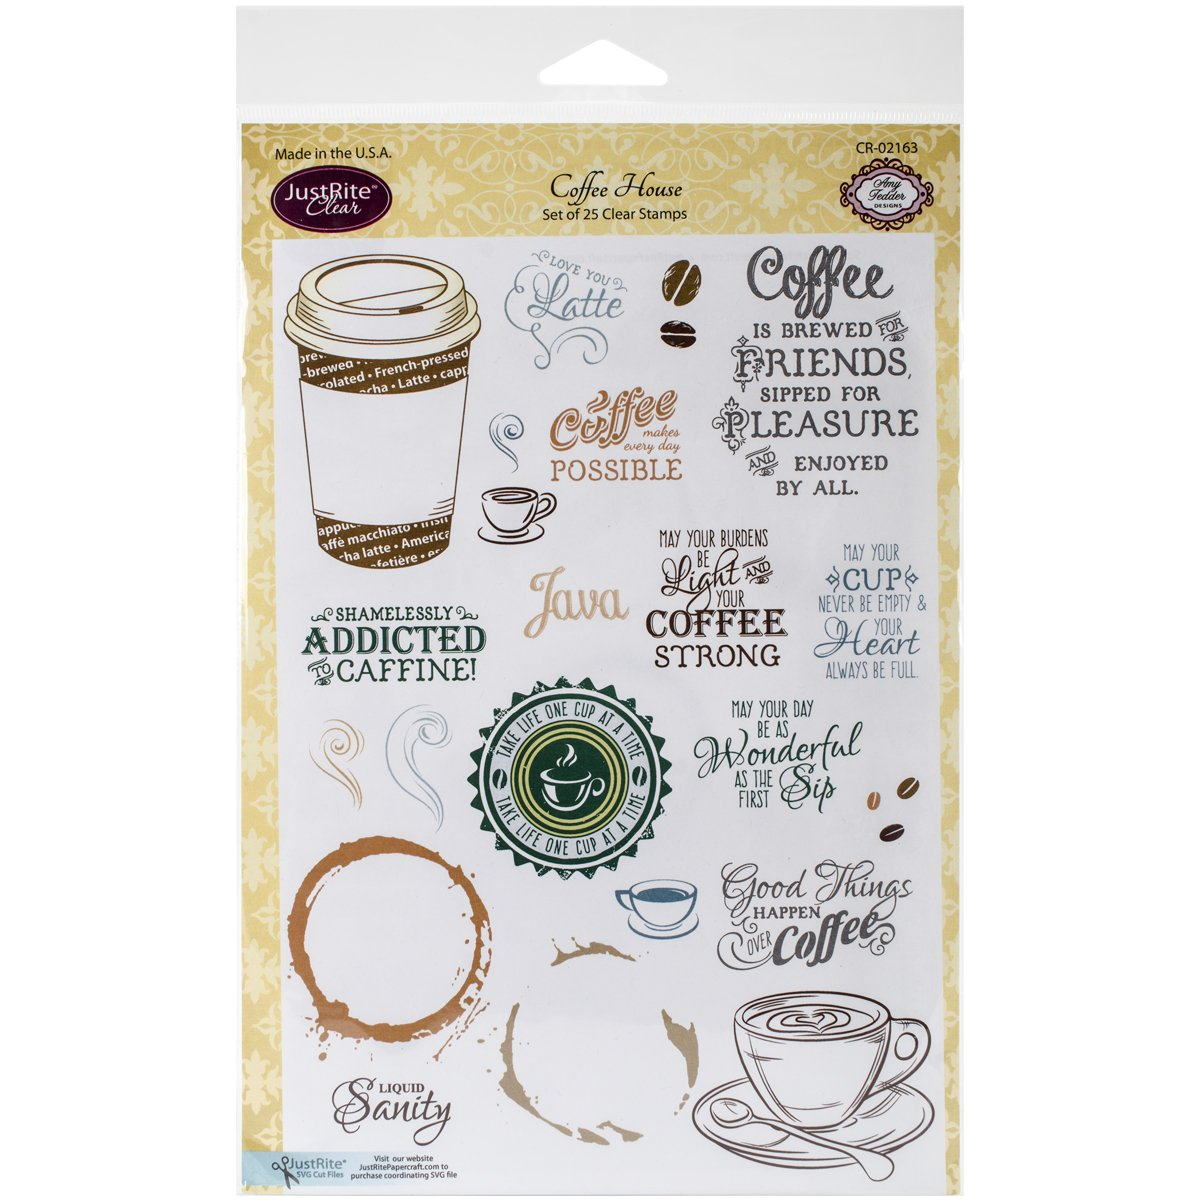 Justrite CR-02163 Papercraft Coffee House Clear Stamp Set, 6x8-Inch Justrite Papercraft CR02163